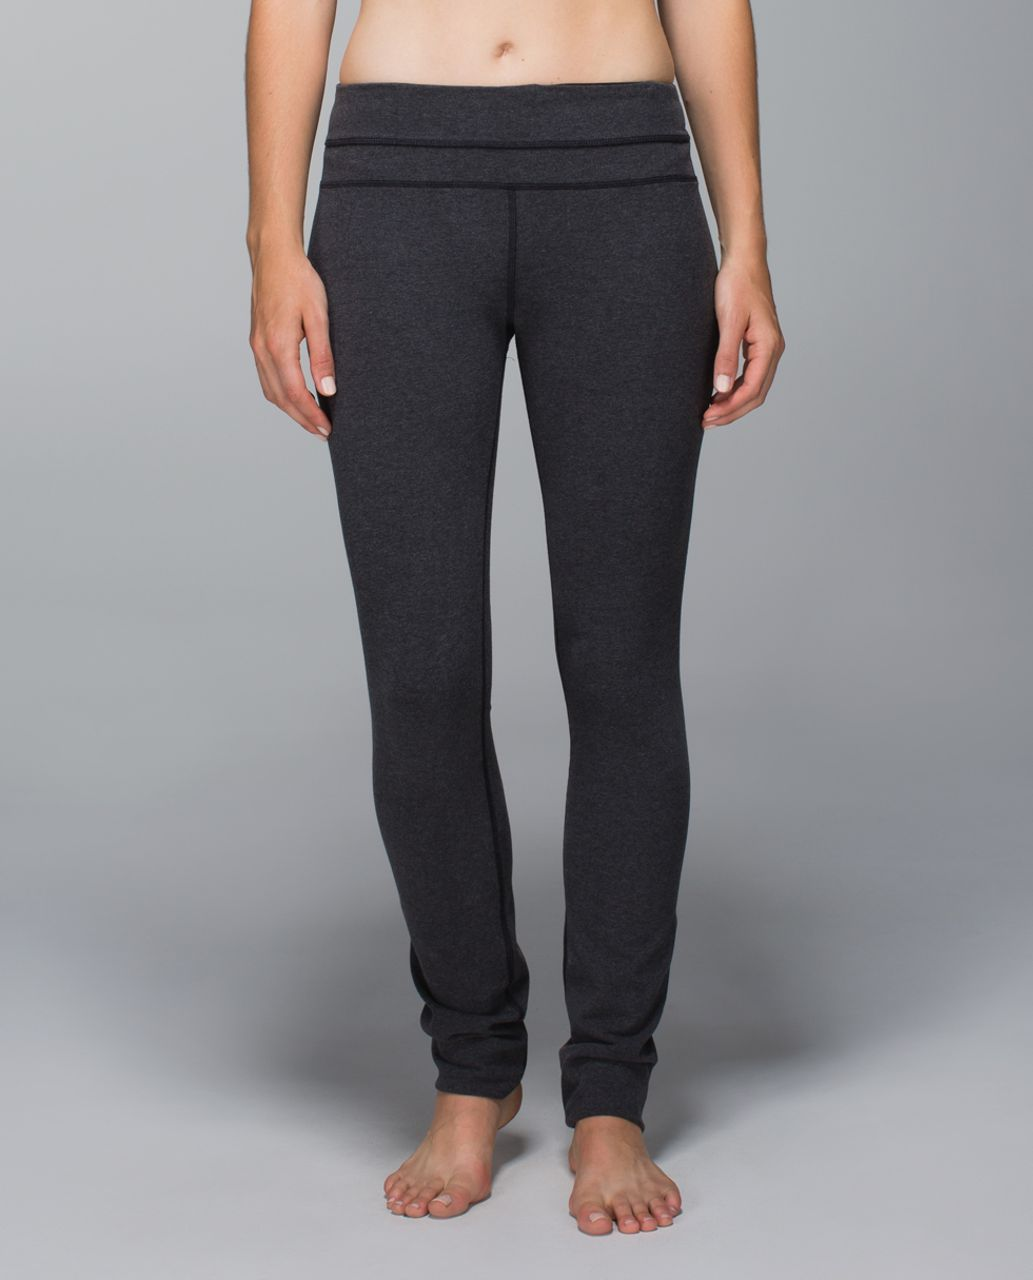 Lululemon Skinny Groove Pant *Cotton - Heathered Black